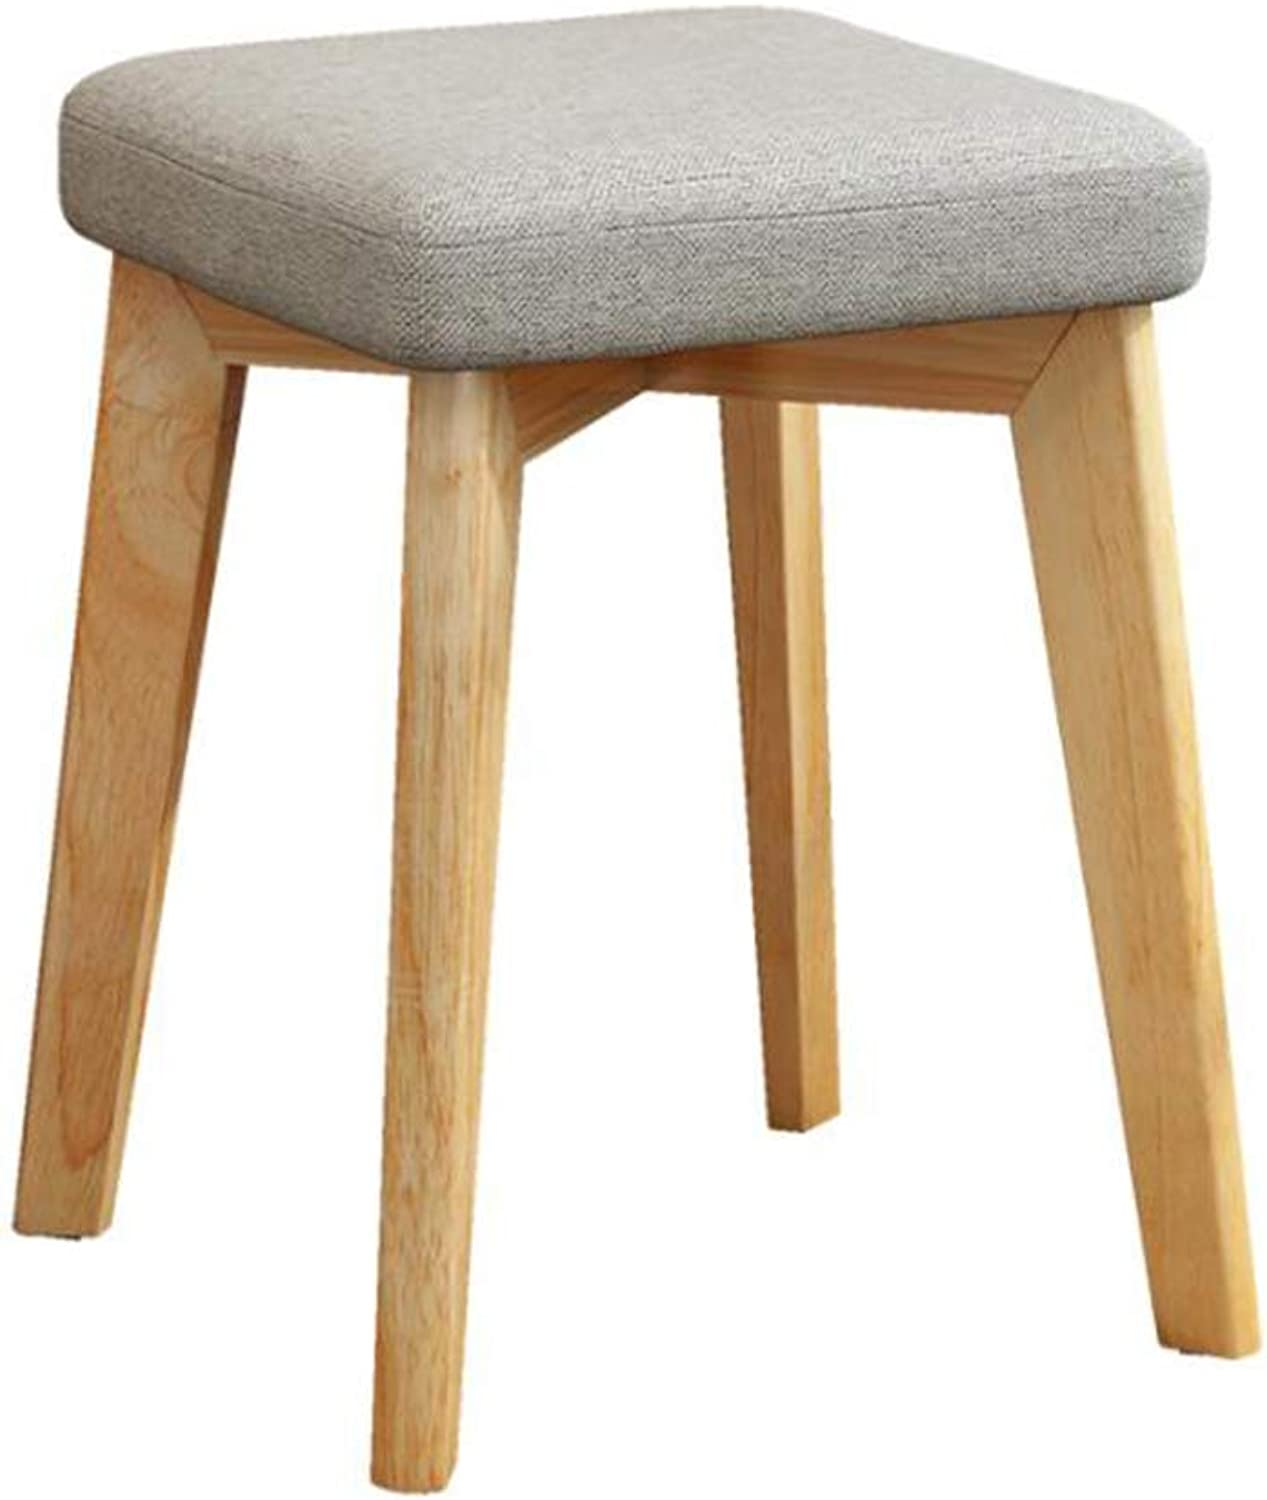 Wooden Dining Stool Modern Makeup Chair Home Dining Stool Adult Fabric Soft Surface Stool